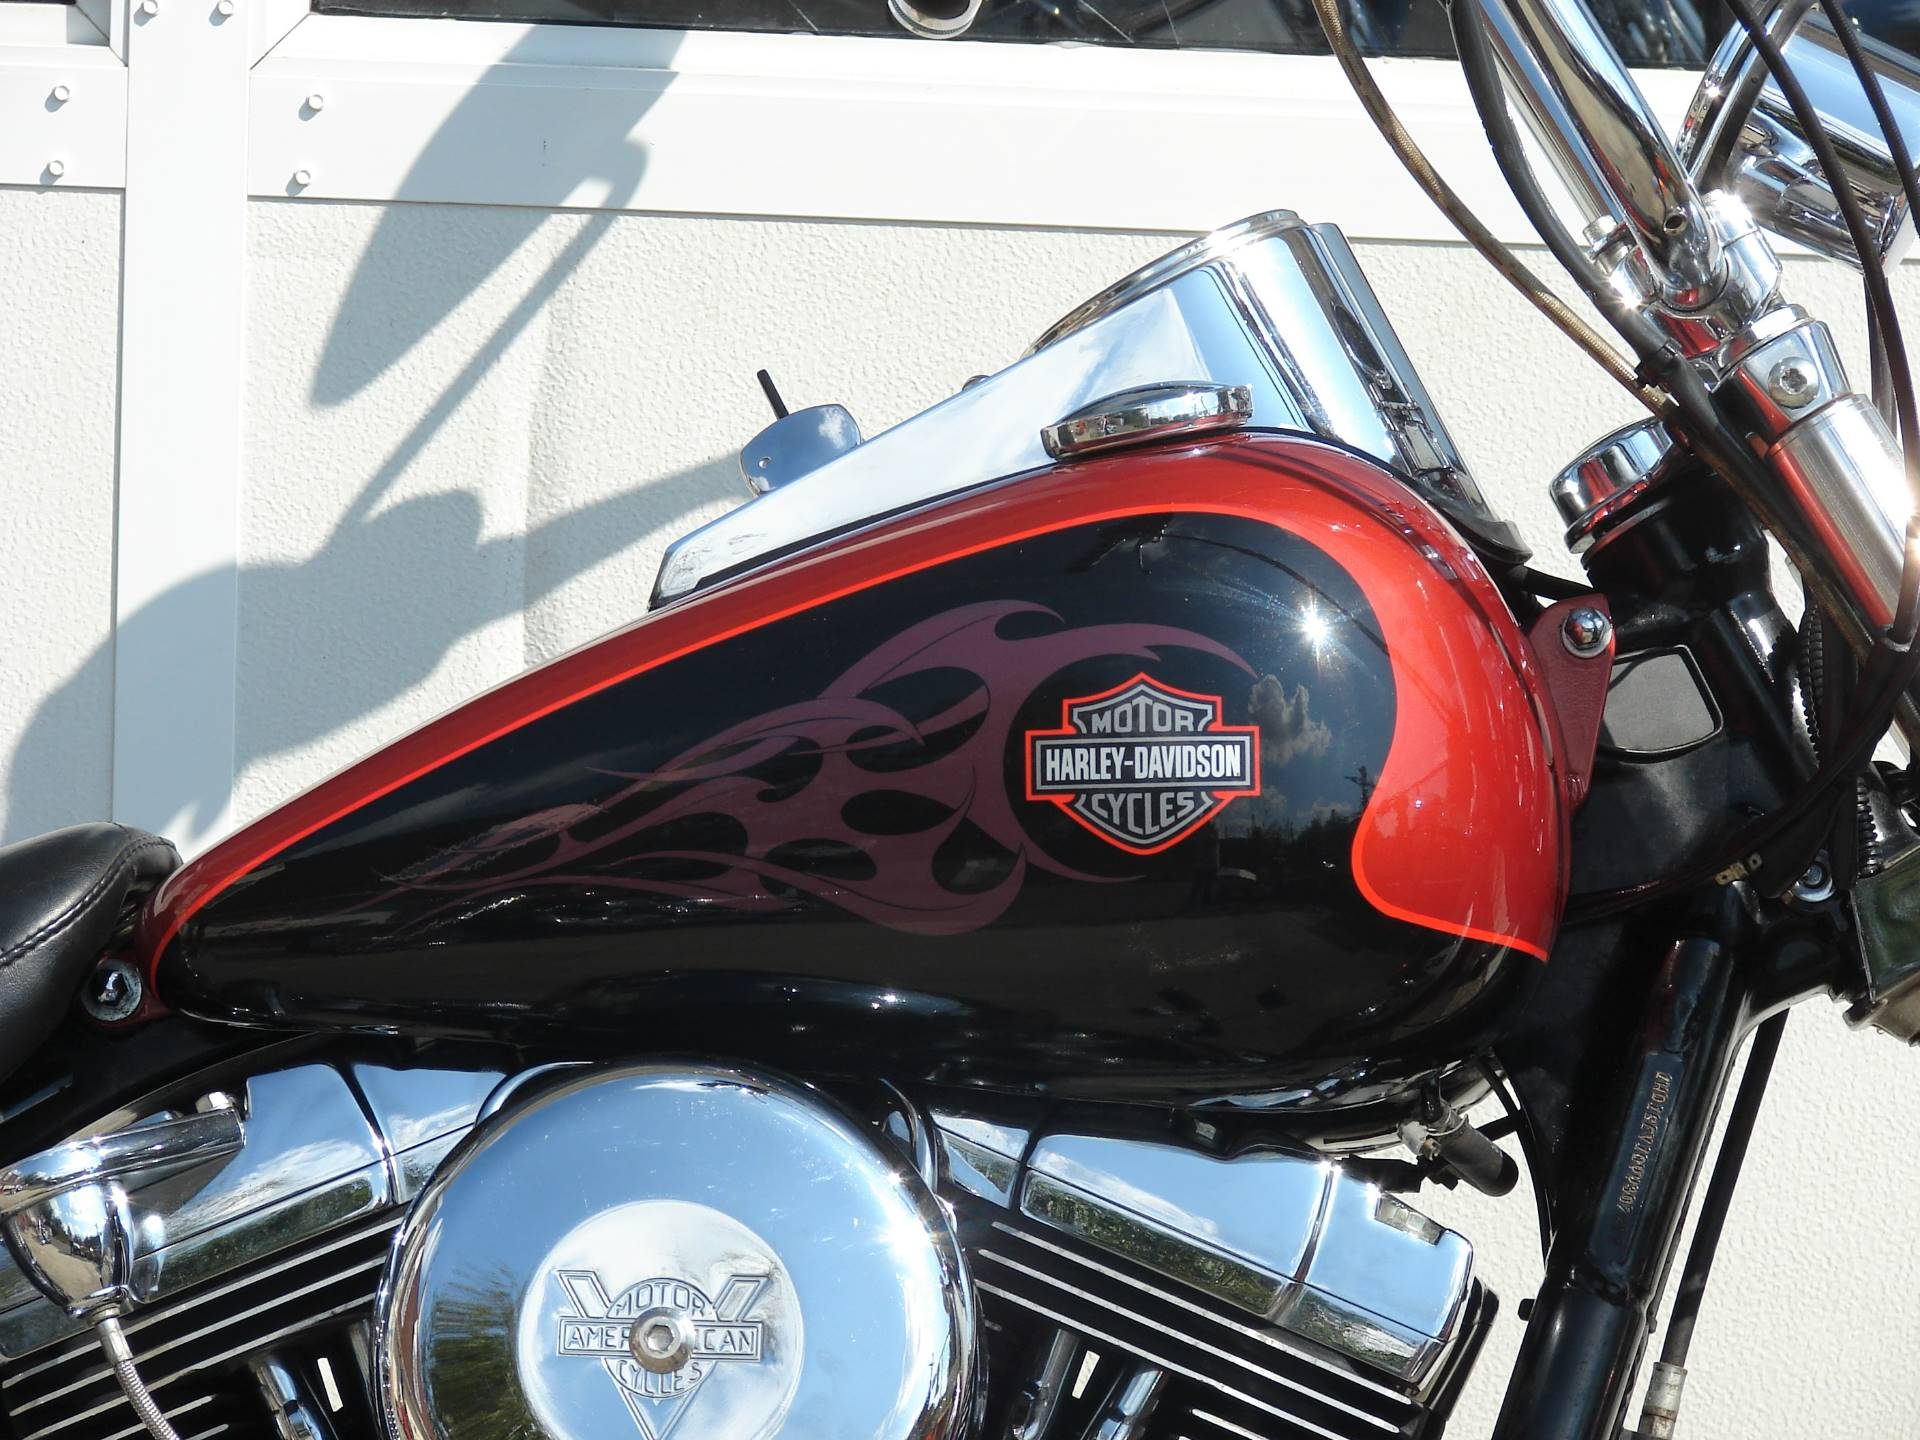 2000 Harley-Davidson FXDWG Dyna Wide Glide in Williamstown, New Jersey - Photo 4